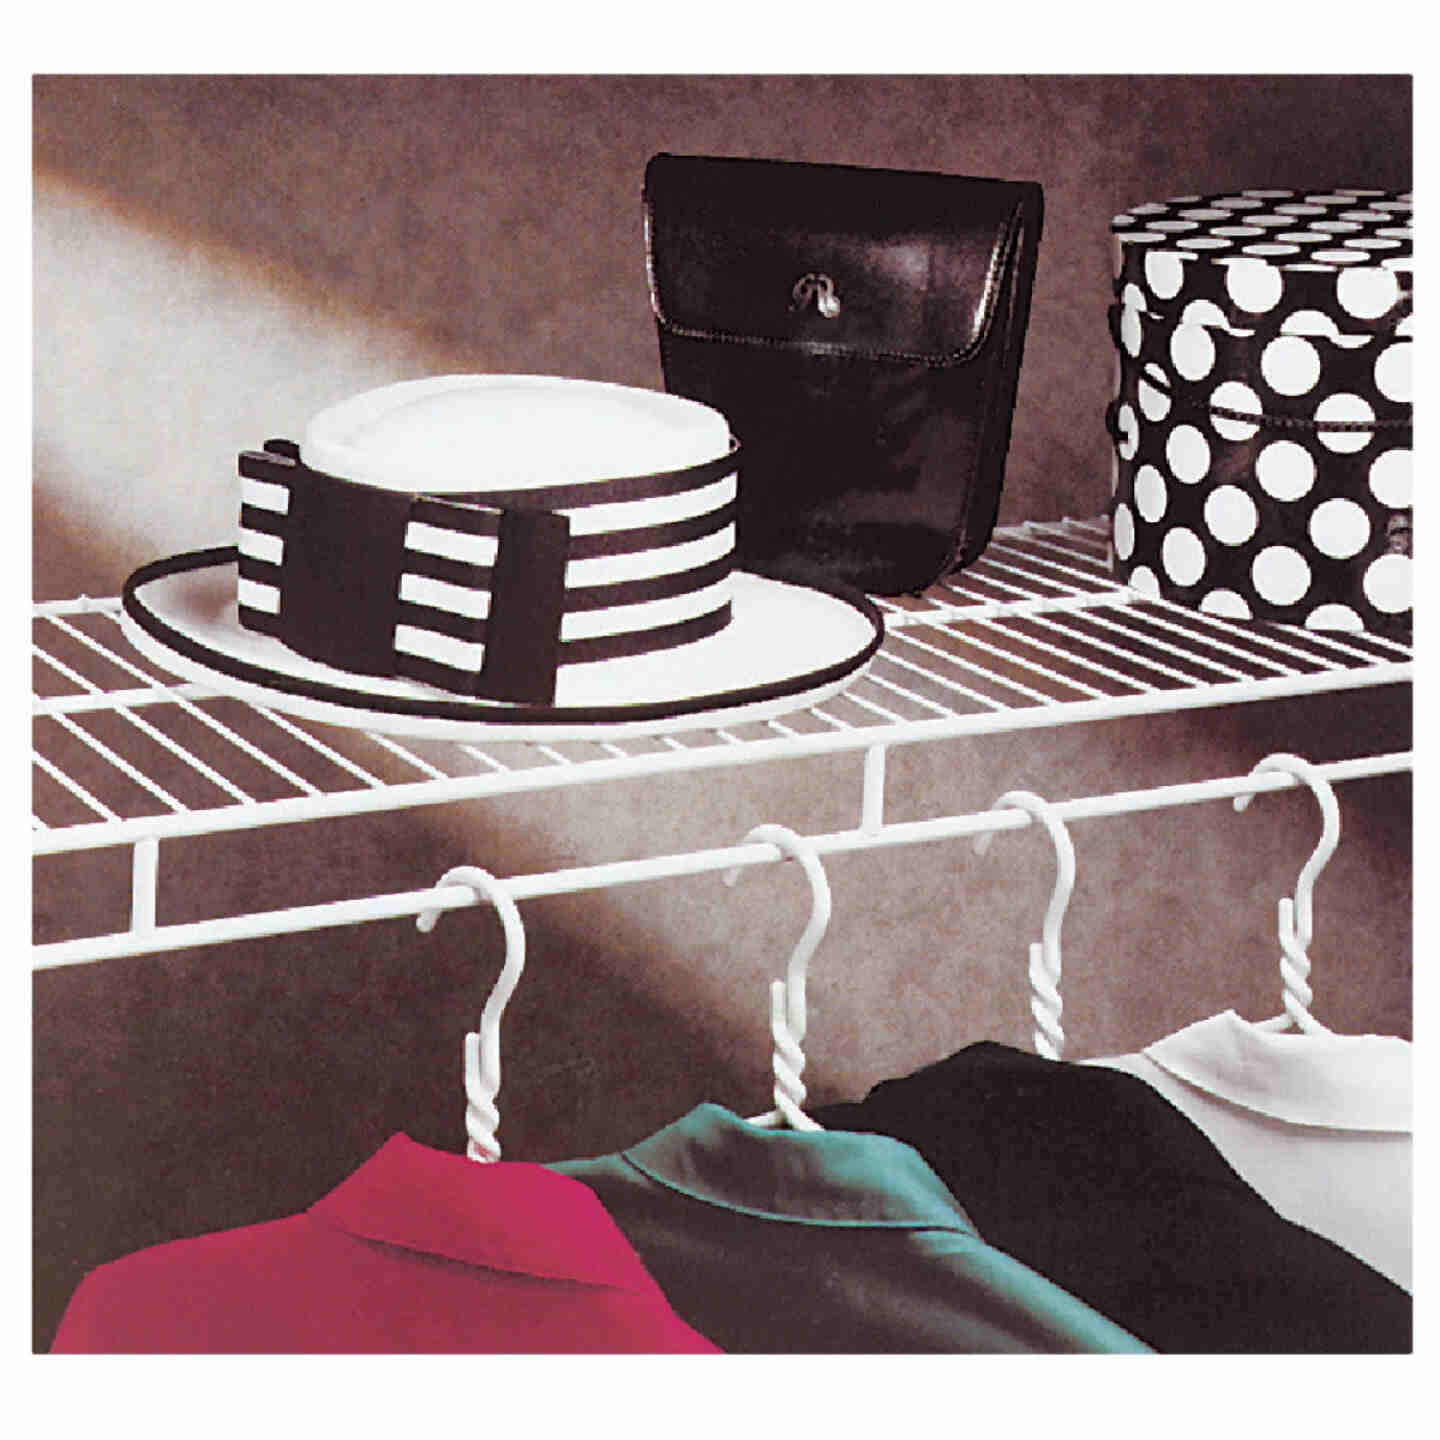 ClosetMaid 6 Ft. W. x 12 In. D. Ventilated Wire Shelf & Rod, White Image 2